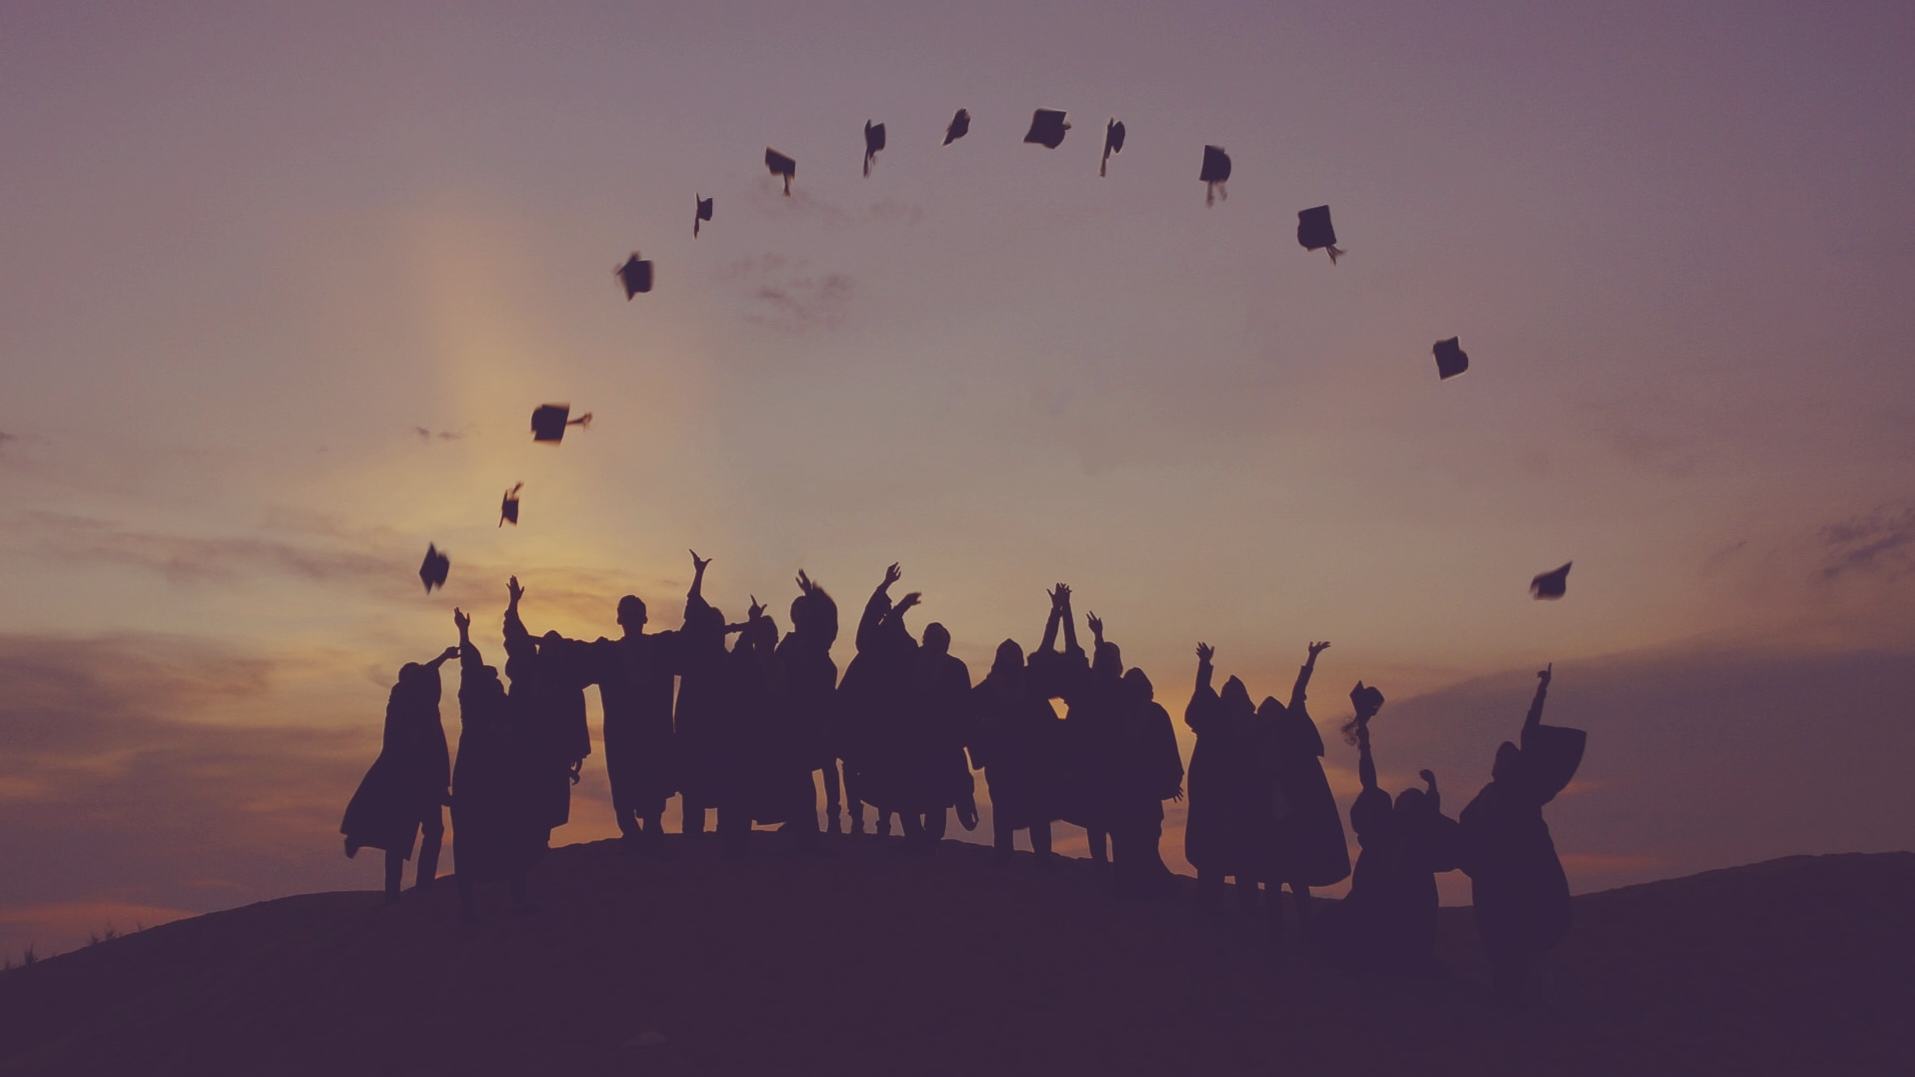 Silhouttes of group of people wearing graduation robes and tossing caps in air